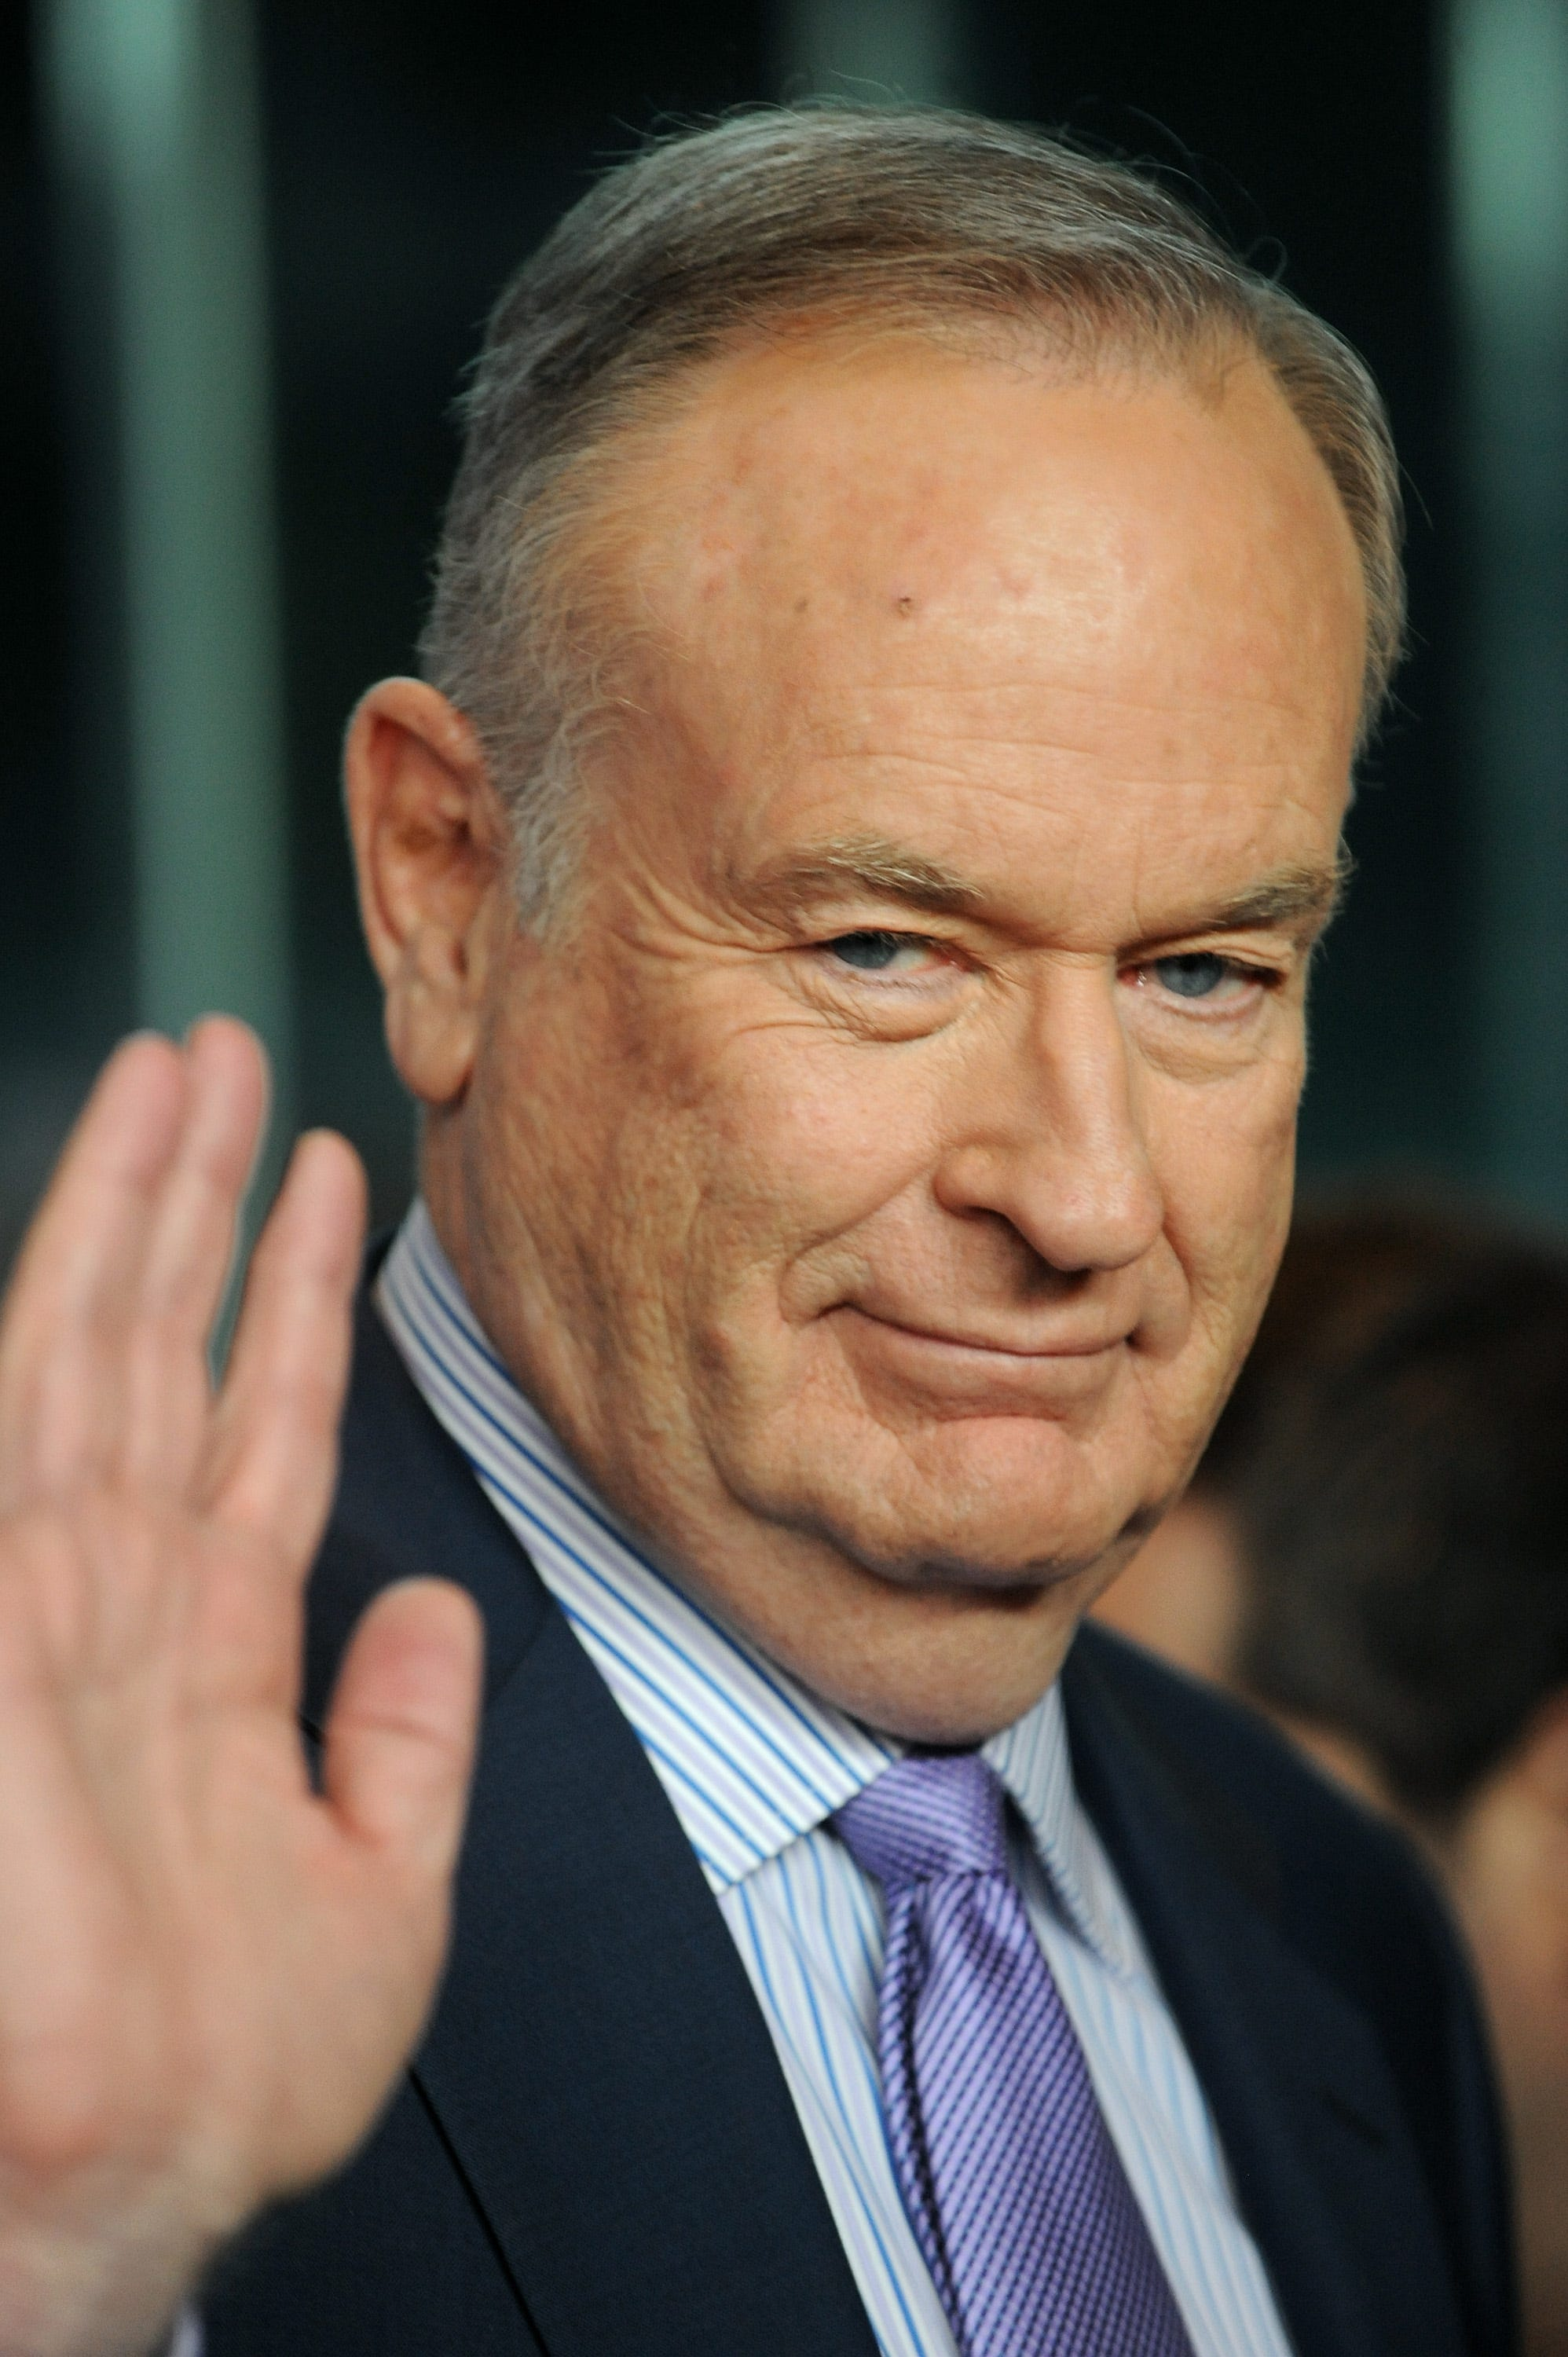 Bill O'Reilly: A timeline of the controversy surrounding the Fox News host